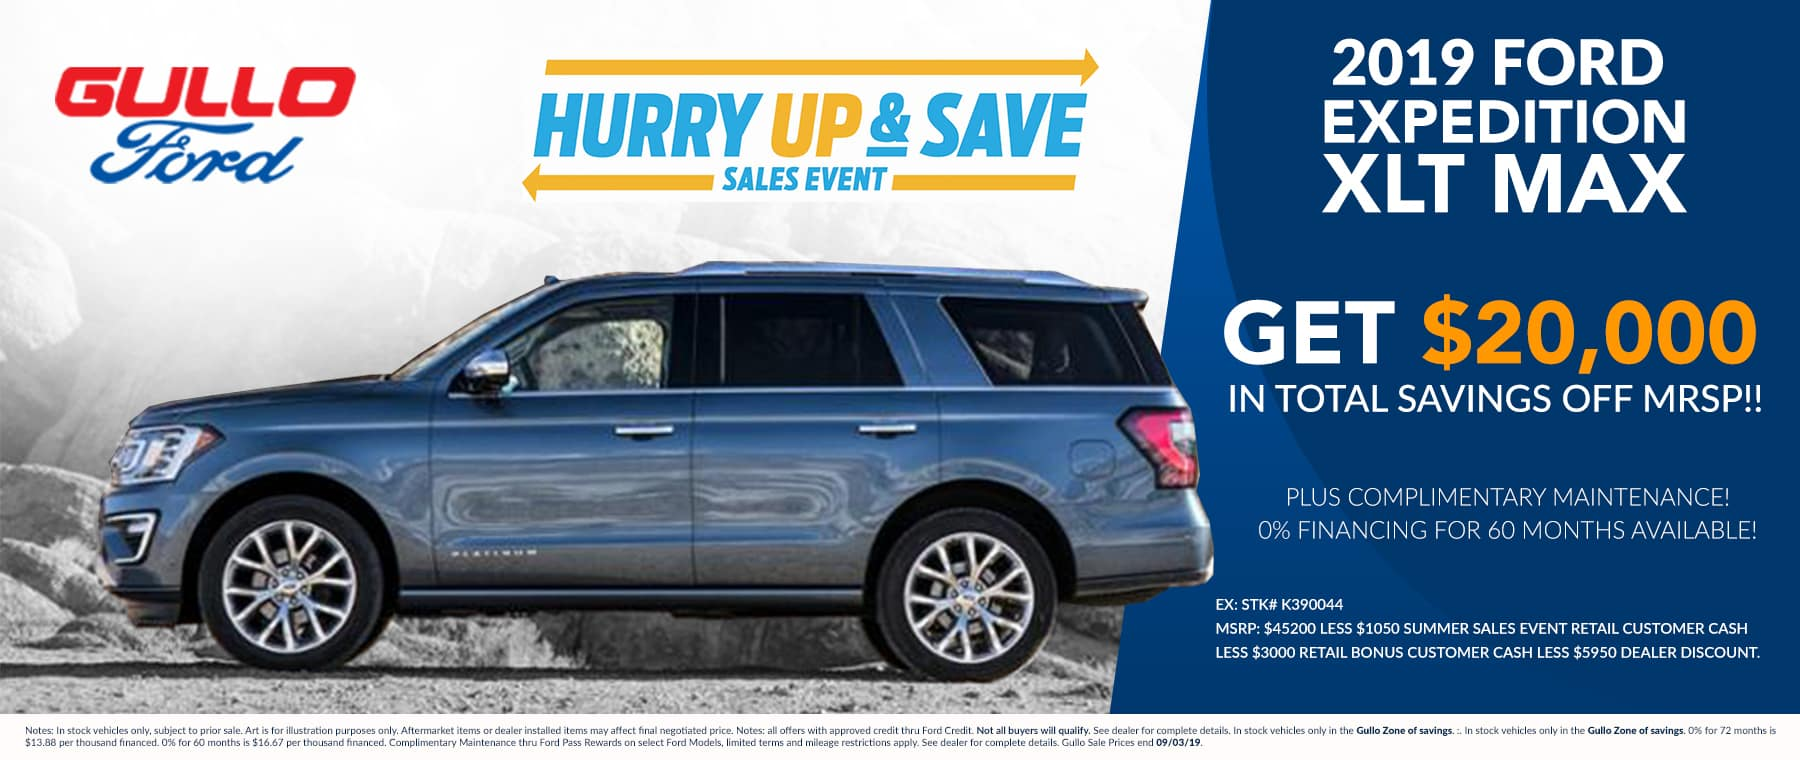 Planet Ford Houston >> Ford Dealership In Conroe Tx Gullo Ford Of Conroe